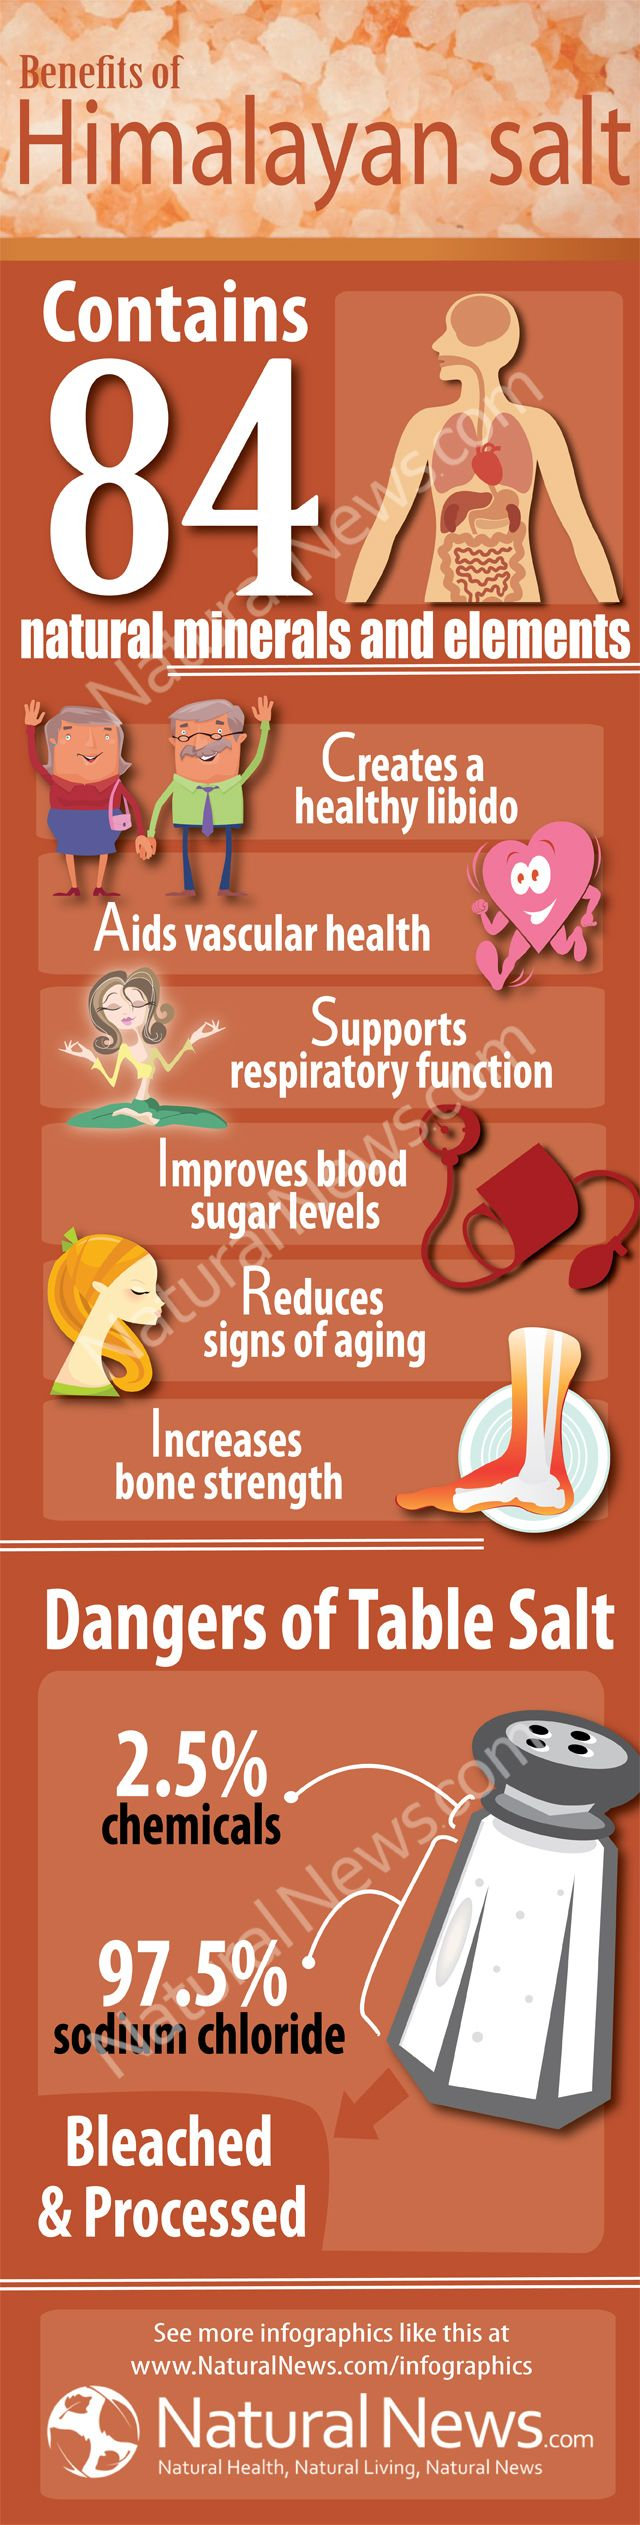 Benefits of Himalayan Salt - I wonder, with all the health benefits, why it isn't more publicized.